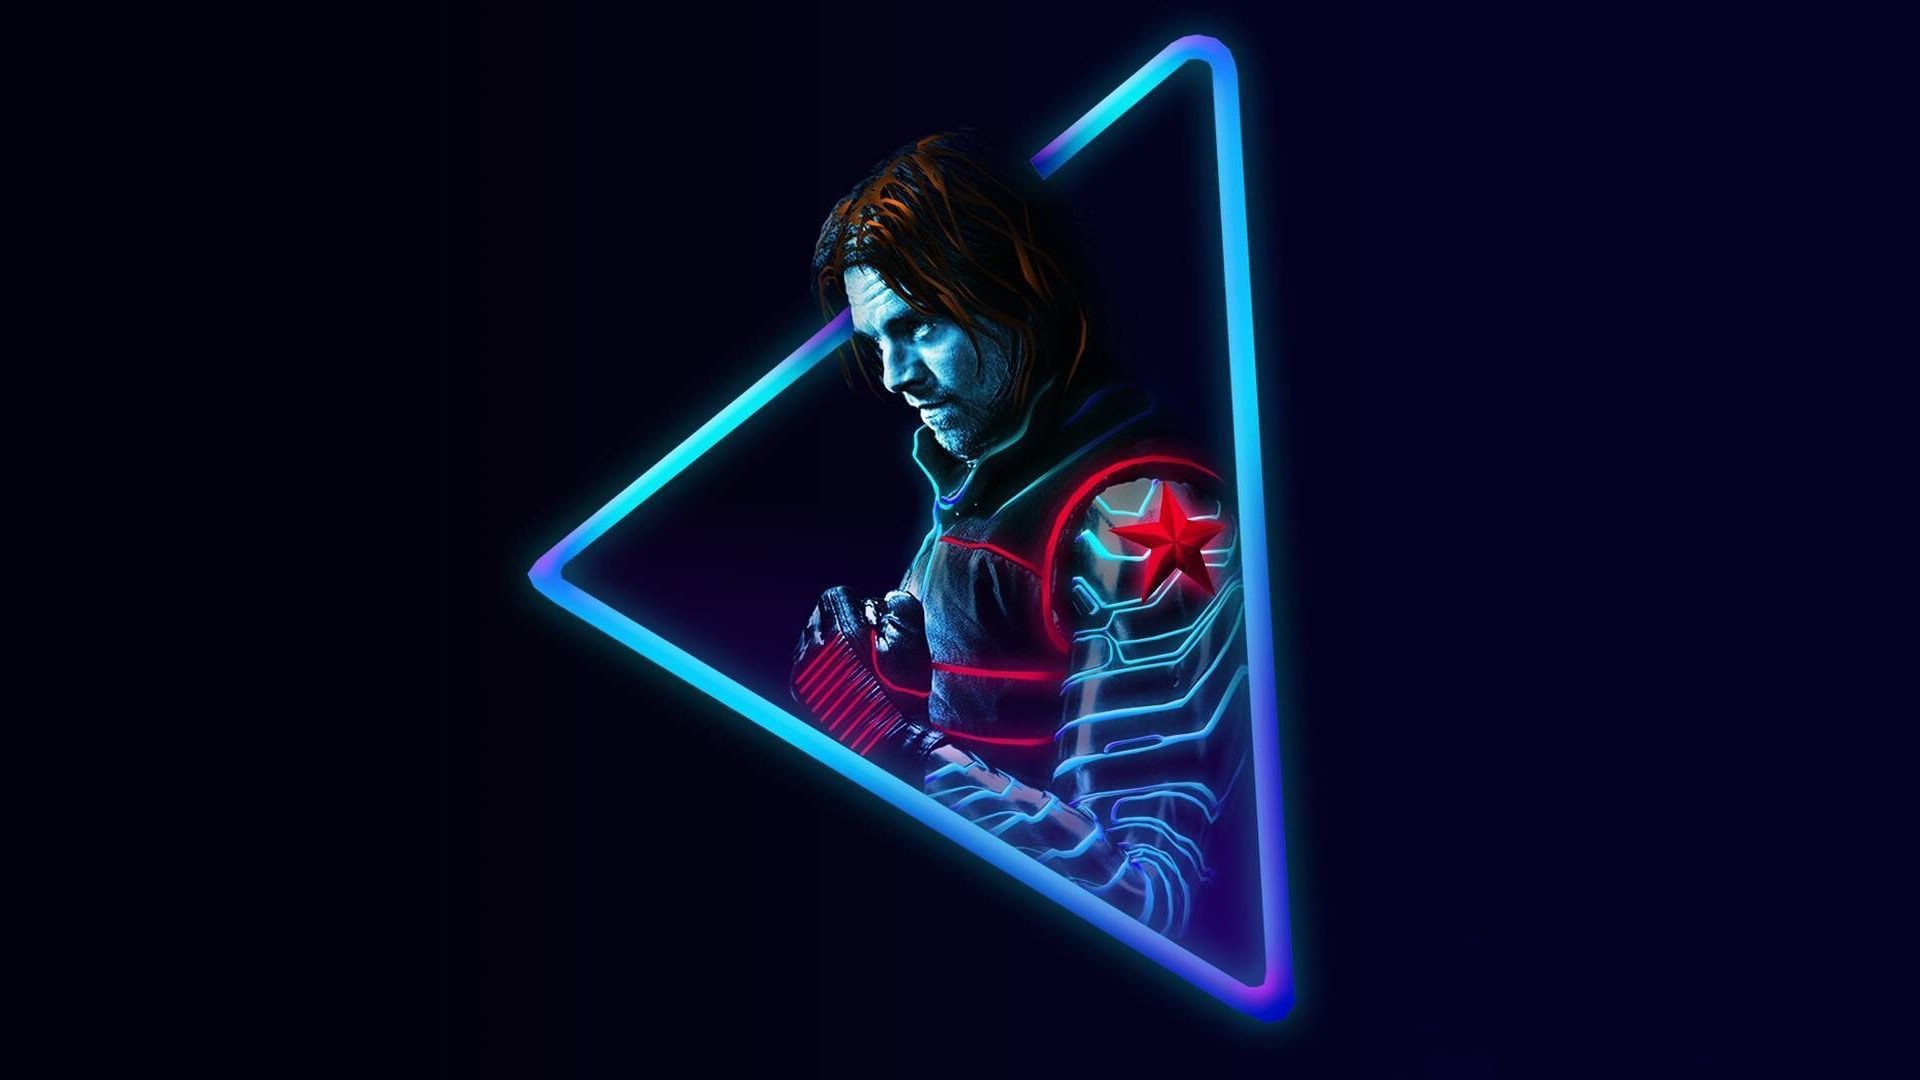 Neon Avengers 1920x1080 Desktop Wallpapers Based On Artwork